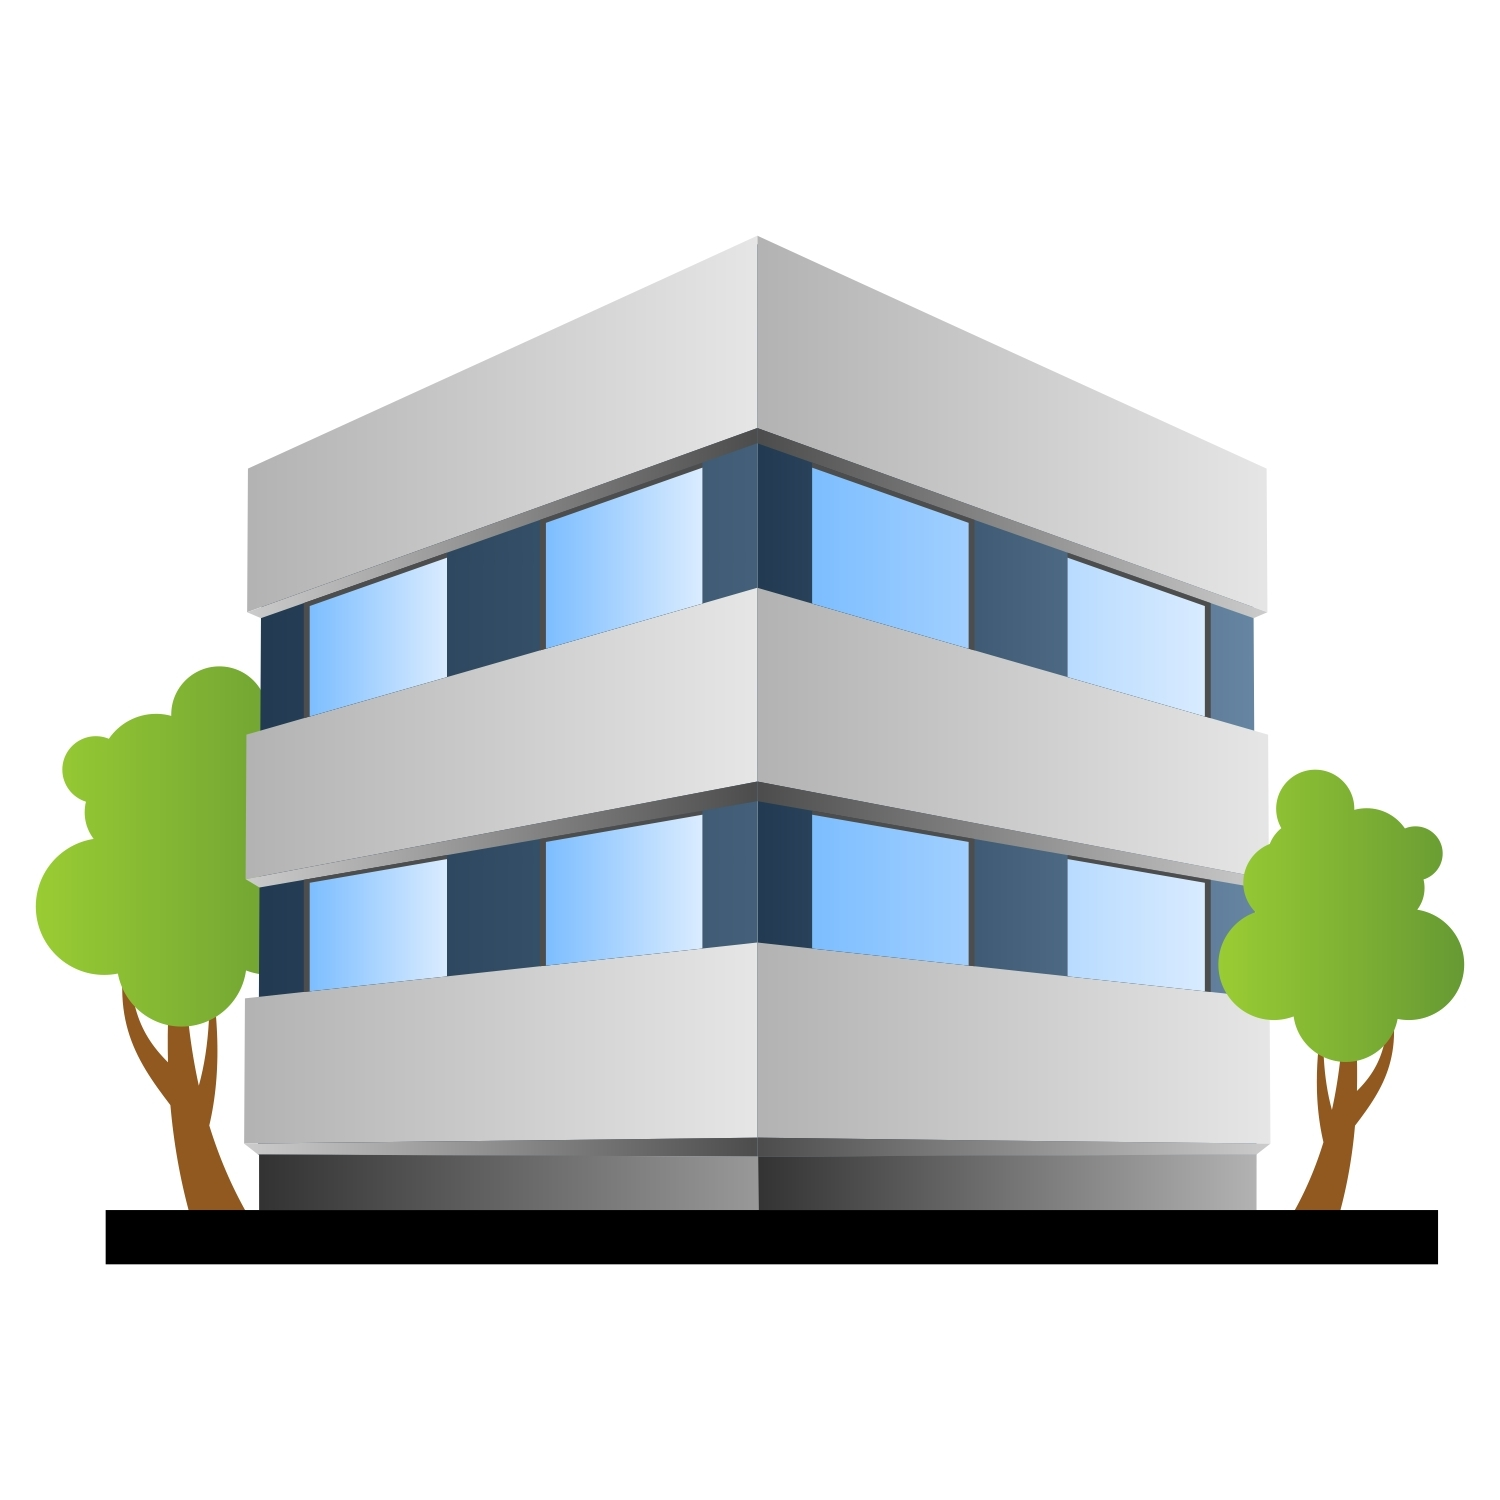 Free Office Building Cliparts, Download Free Clip Art, Free Clip Art.